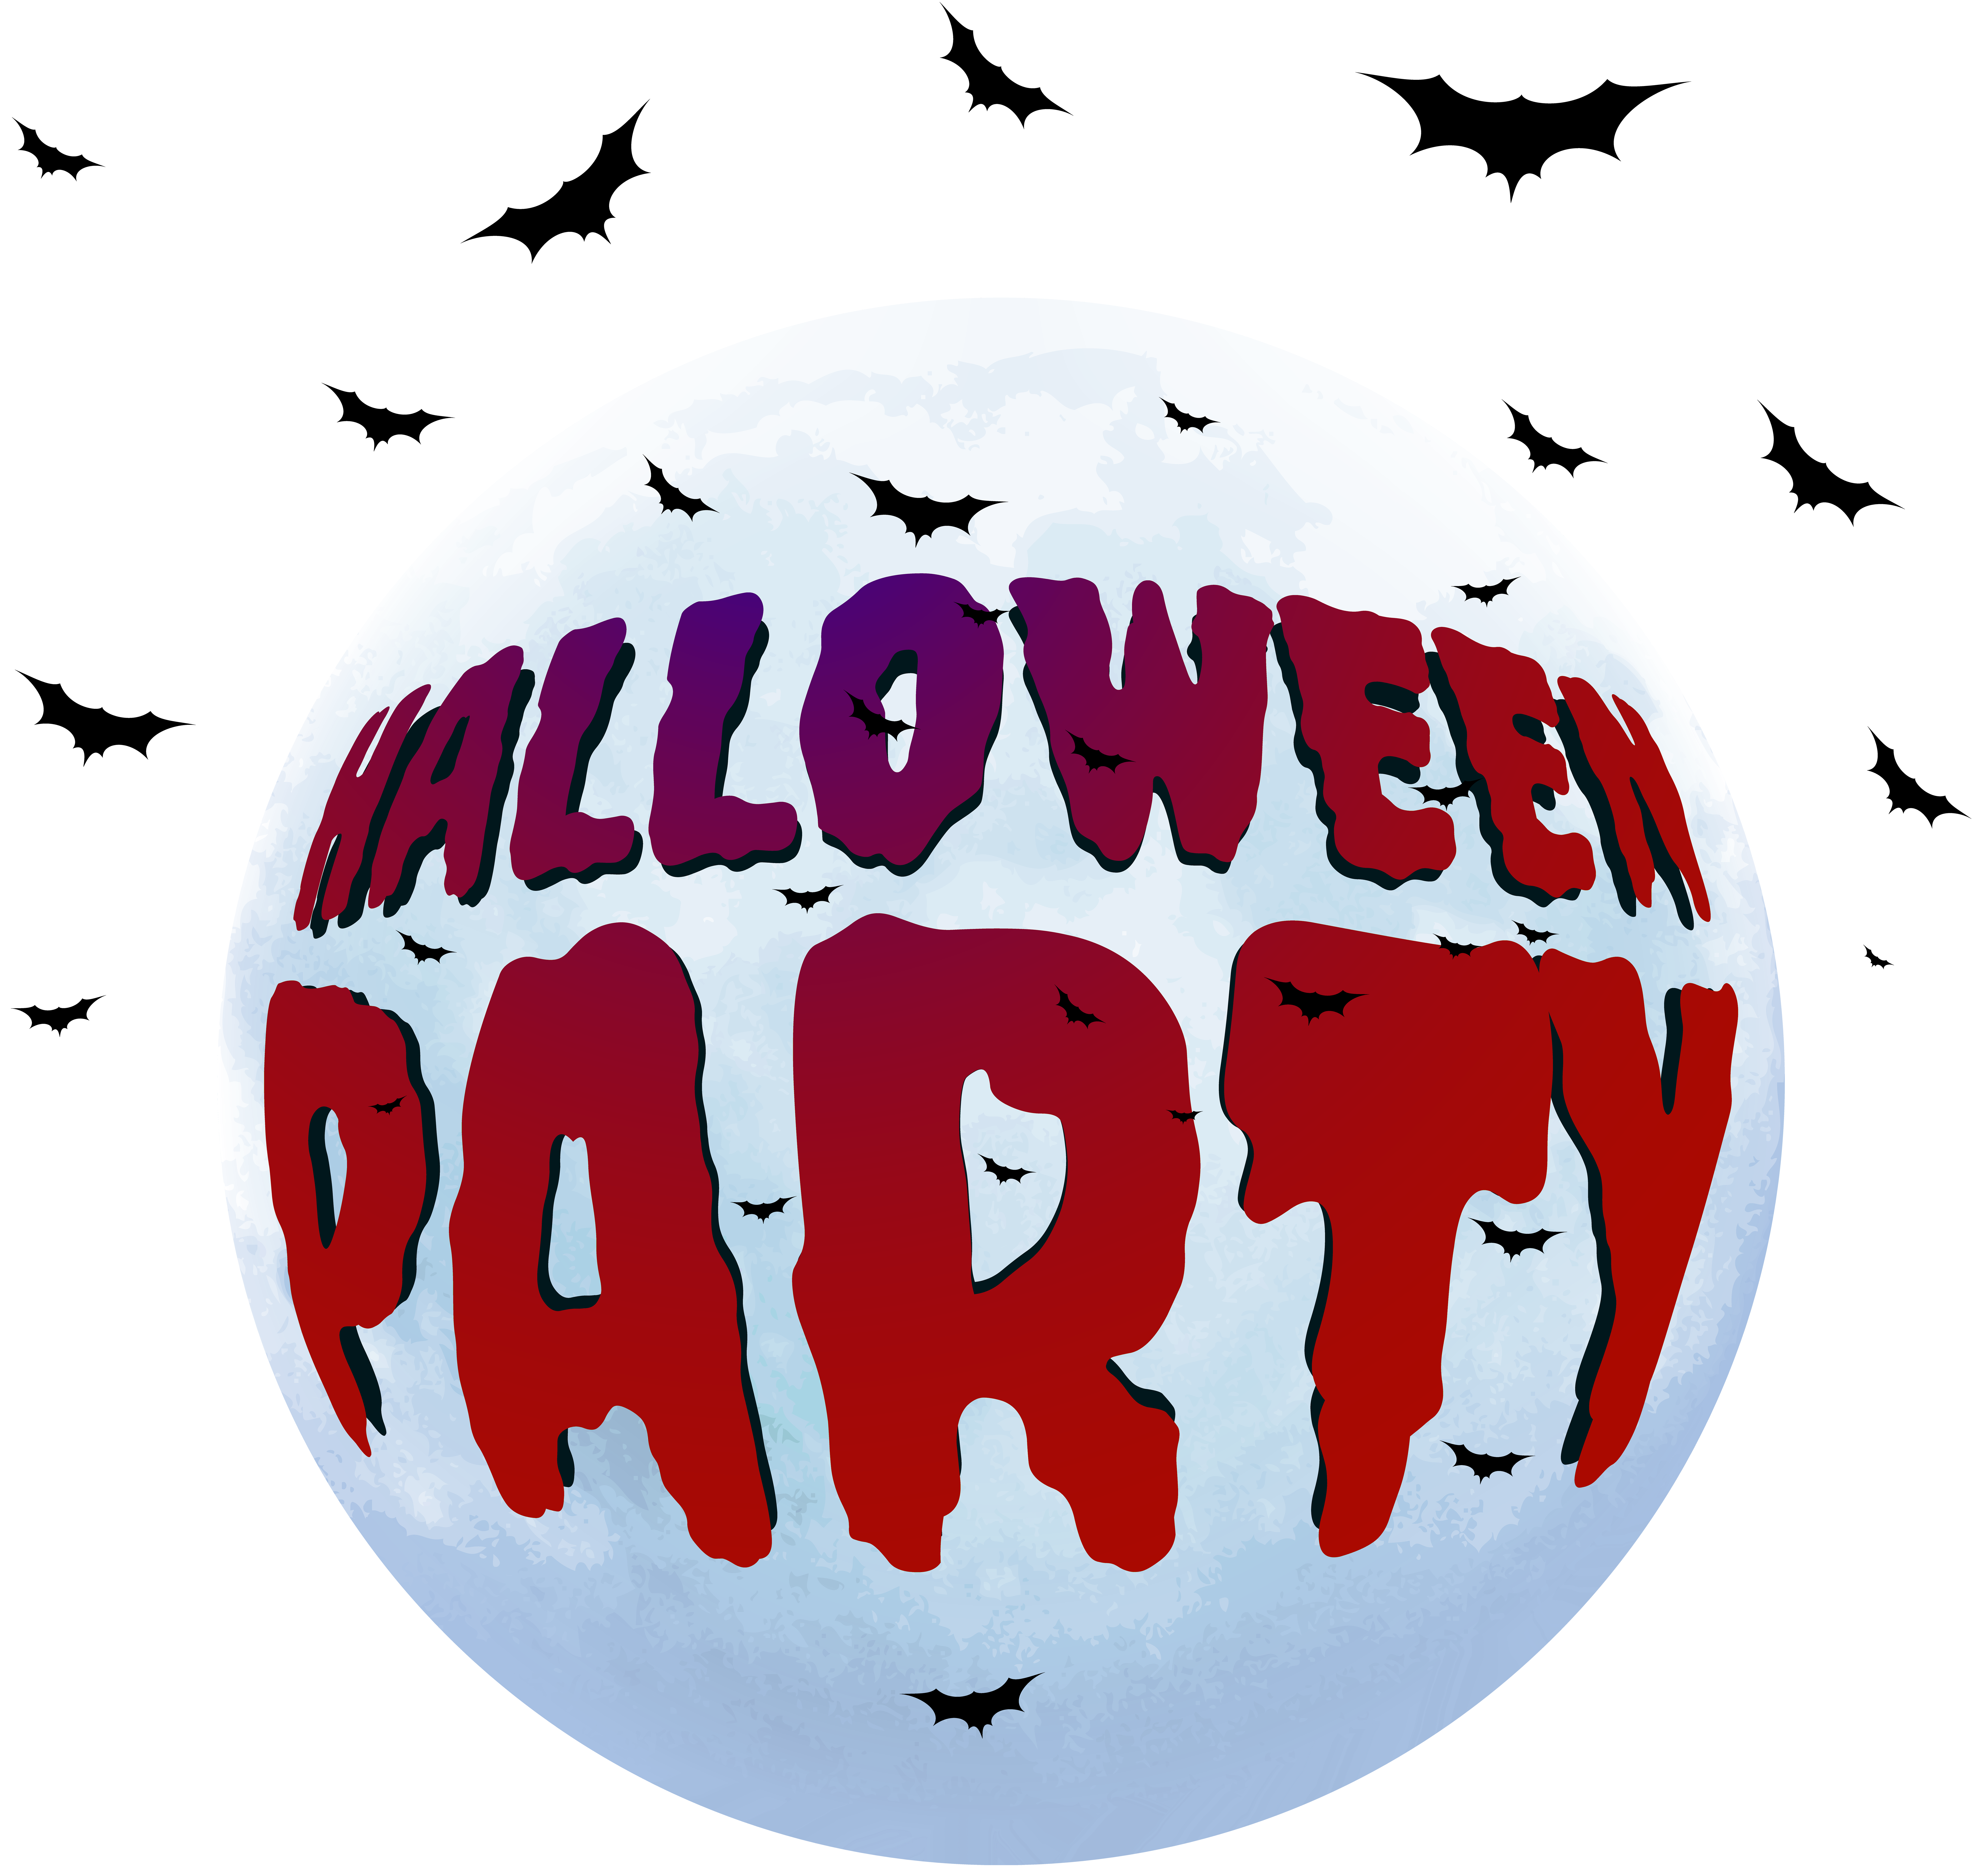 Halloween party clipart images clipart library library Halloween Party PNG Clip Art Image | Gallery Yopriceville - High ... clipart library library